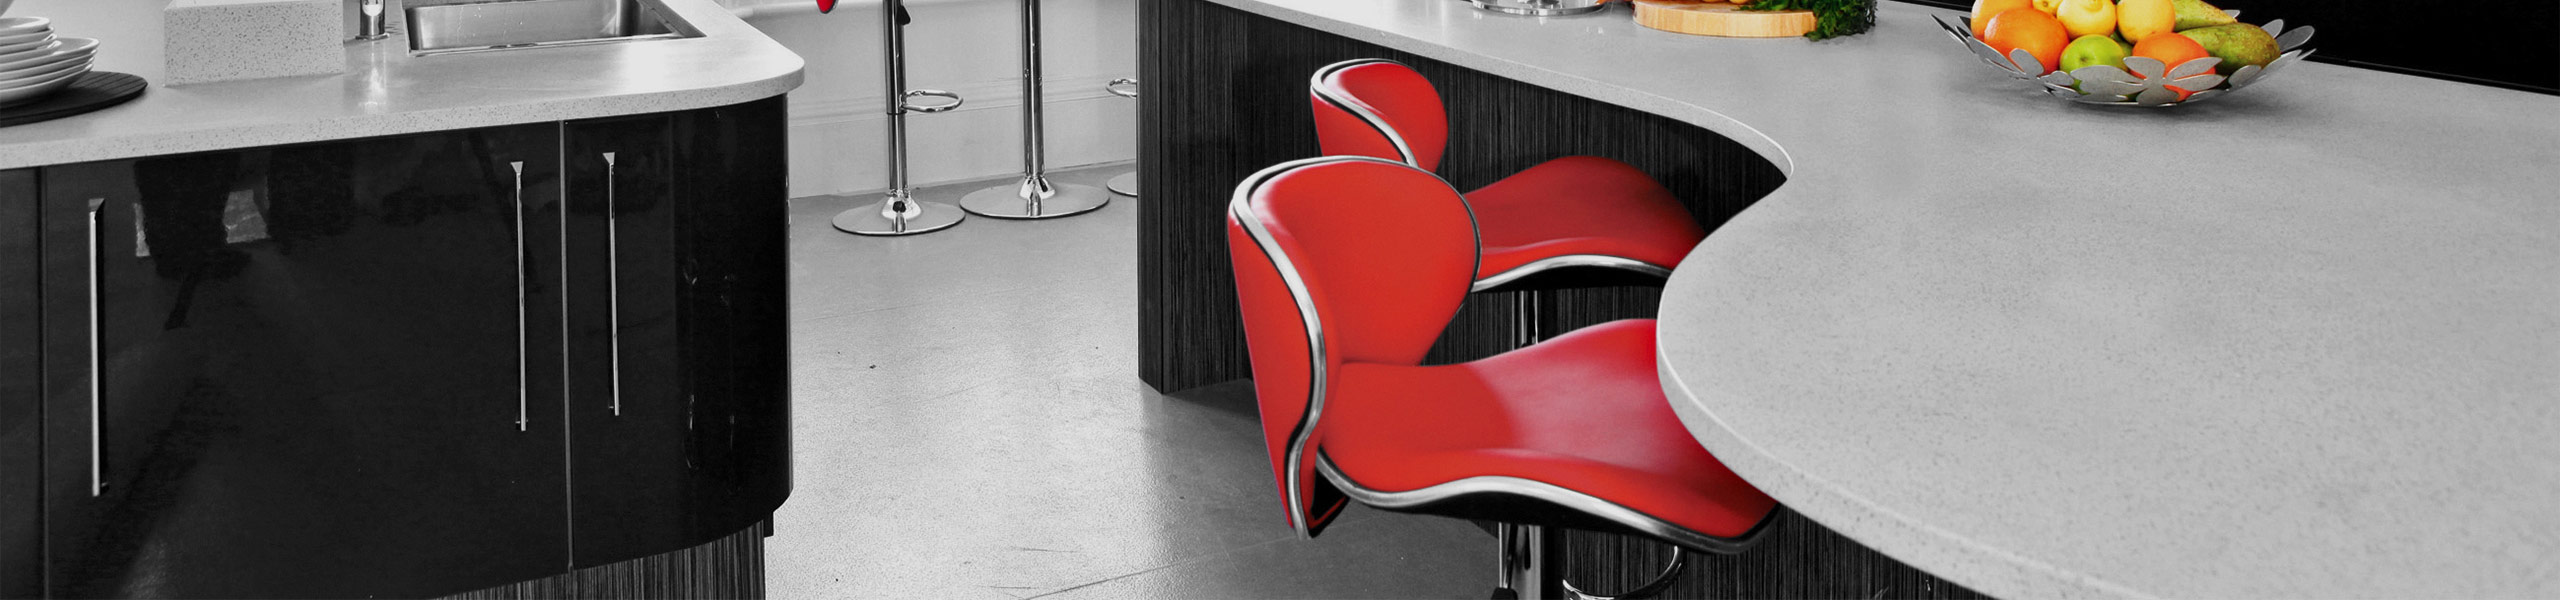 Duo Bar Stool Red Video Banner